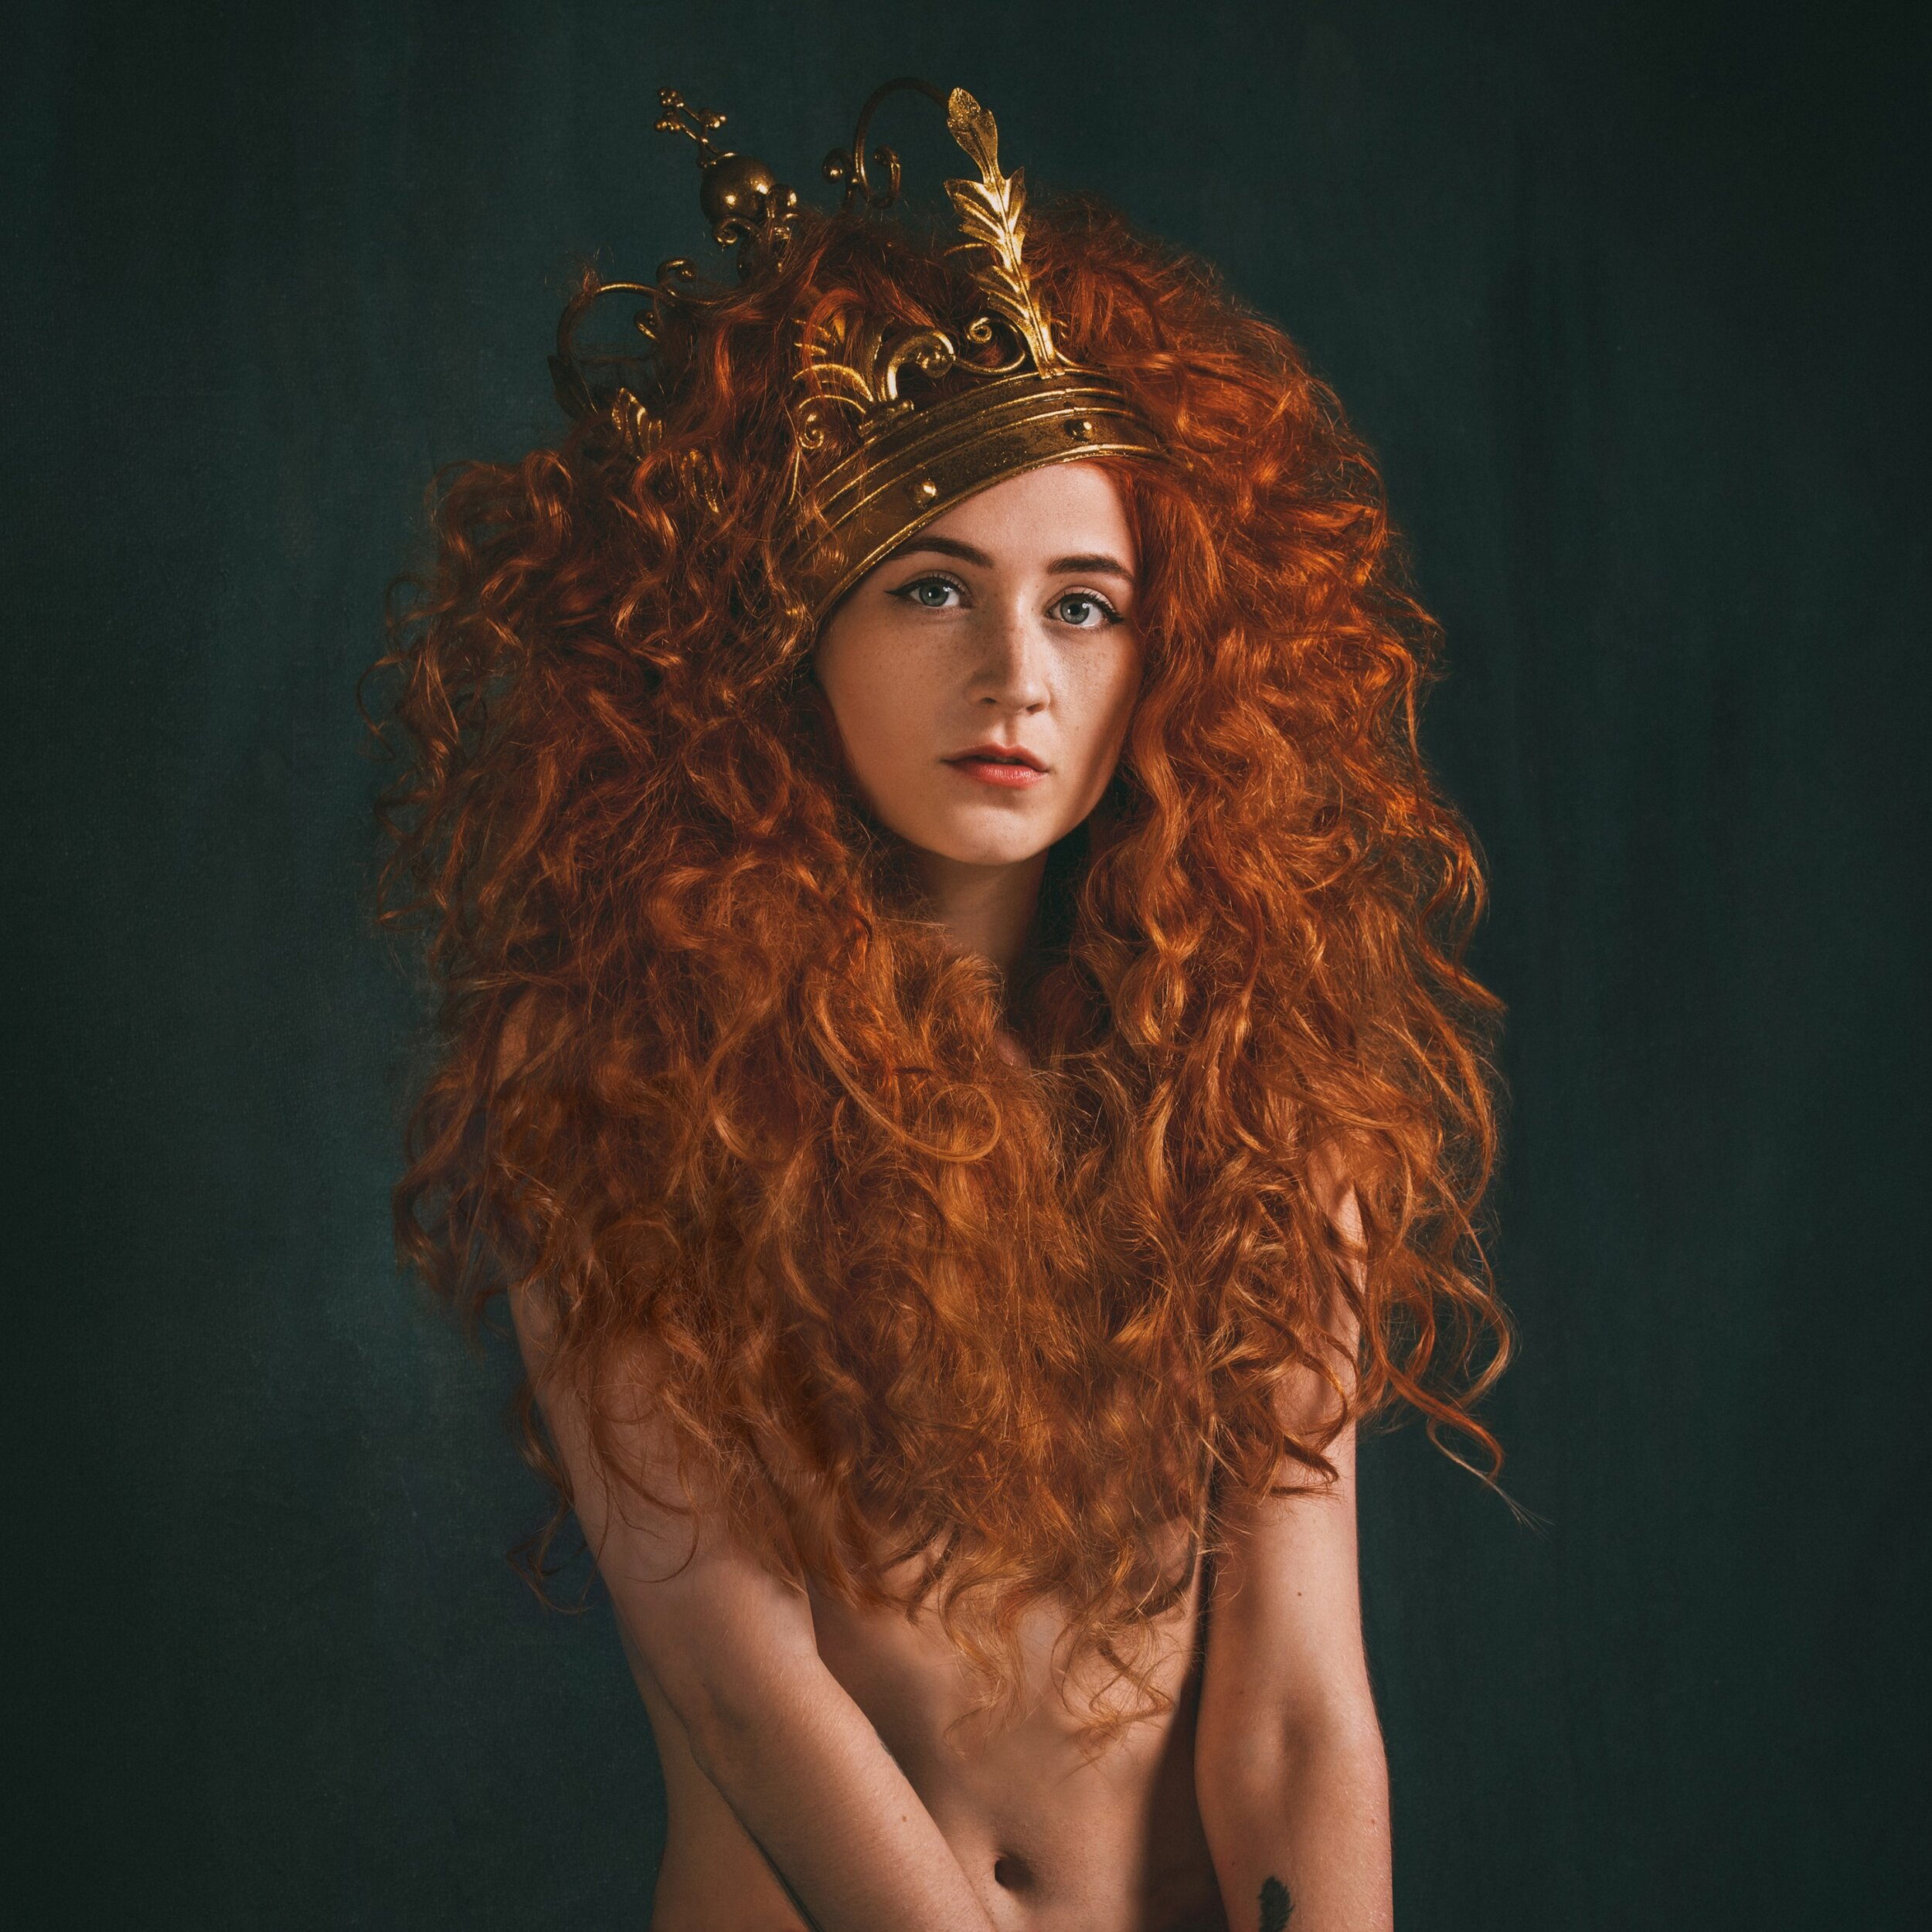 Janet-Devlin-Saint-Of-The-Sinners.jpg